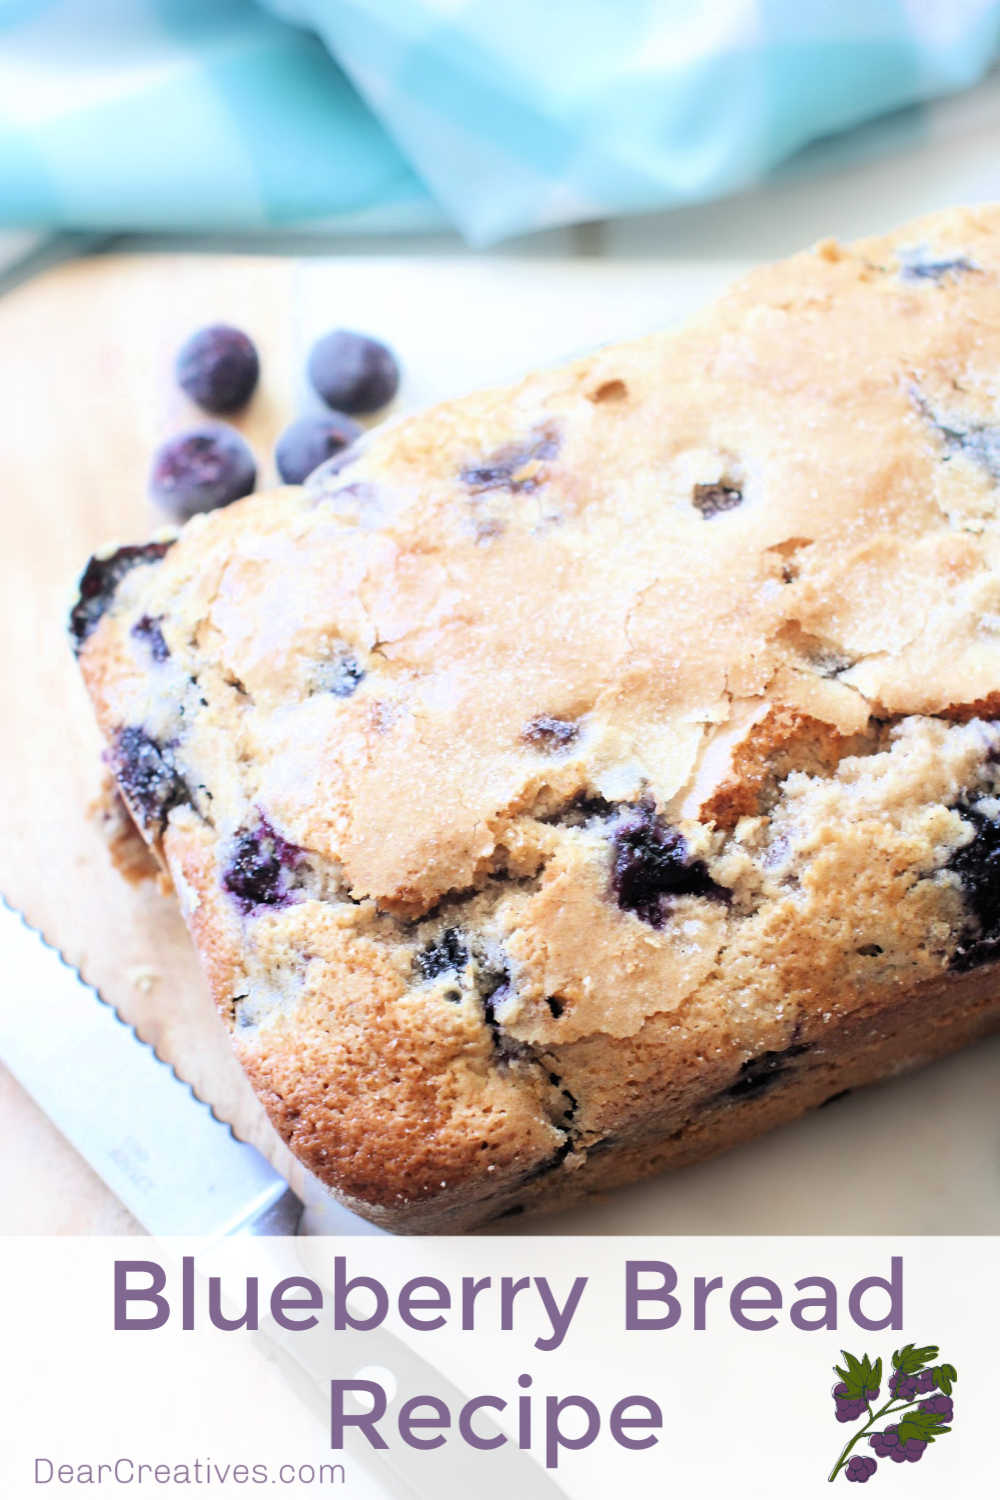 Blueberry Bread Recipe – Easy To Make!